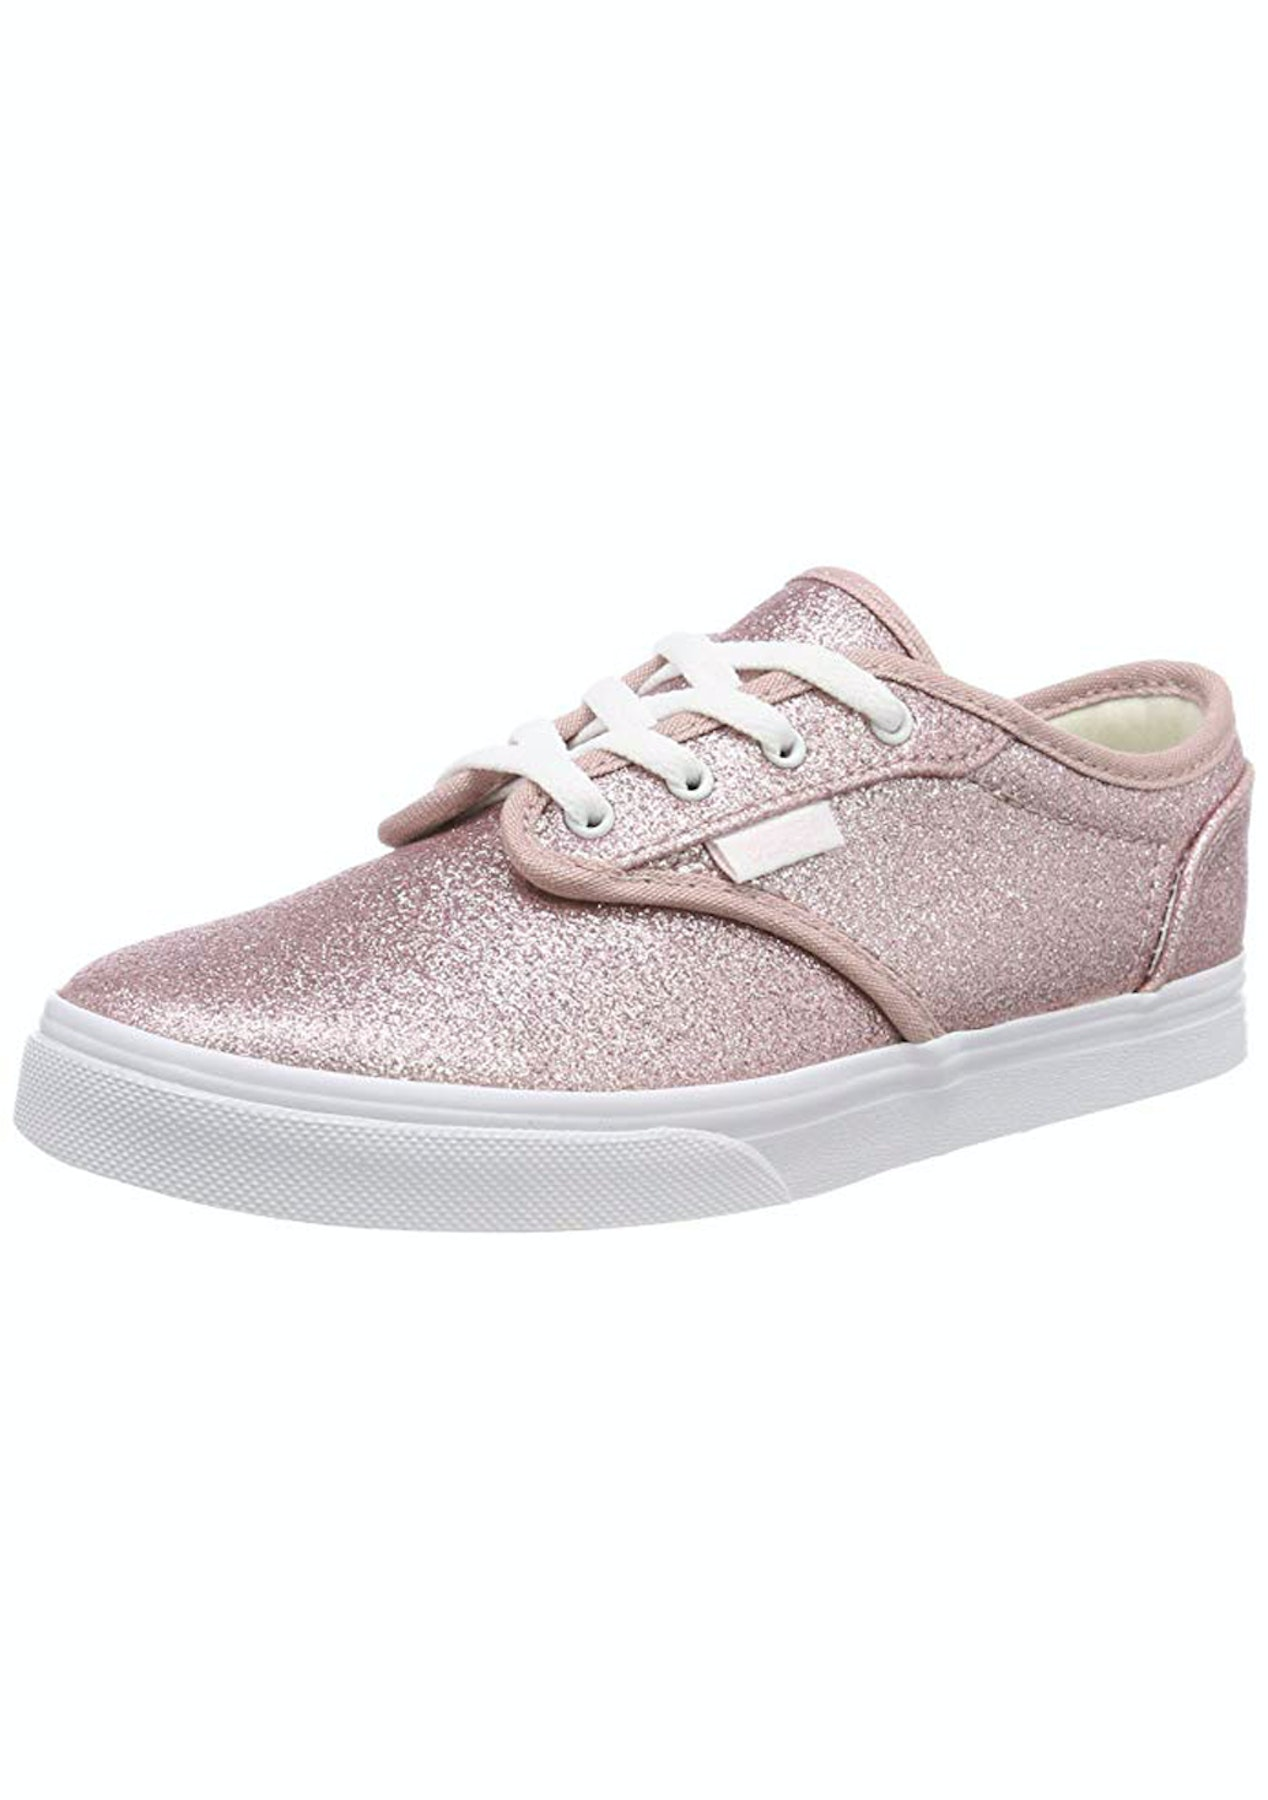 Vans - Kids Atwood Low - Glitter - Pink - Vans for The Family - Onceit c7b3bceb6eef